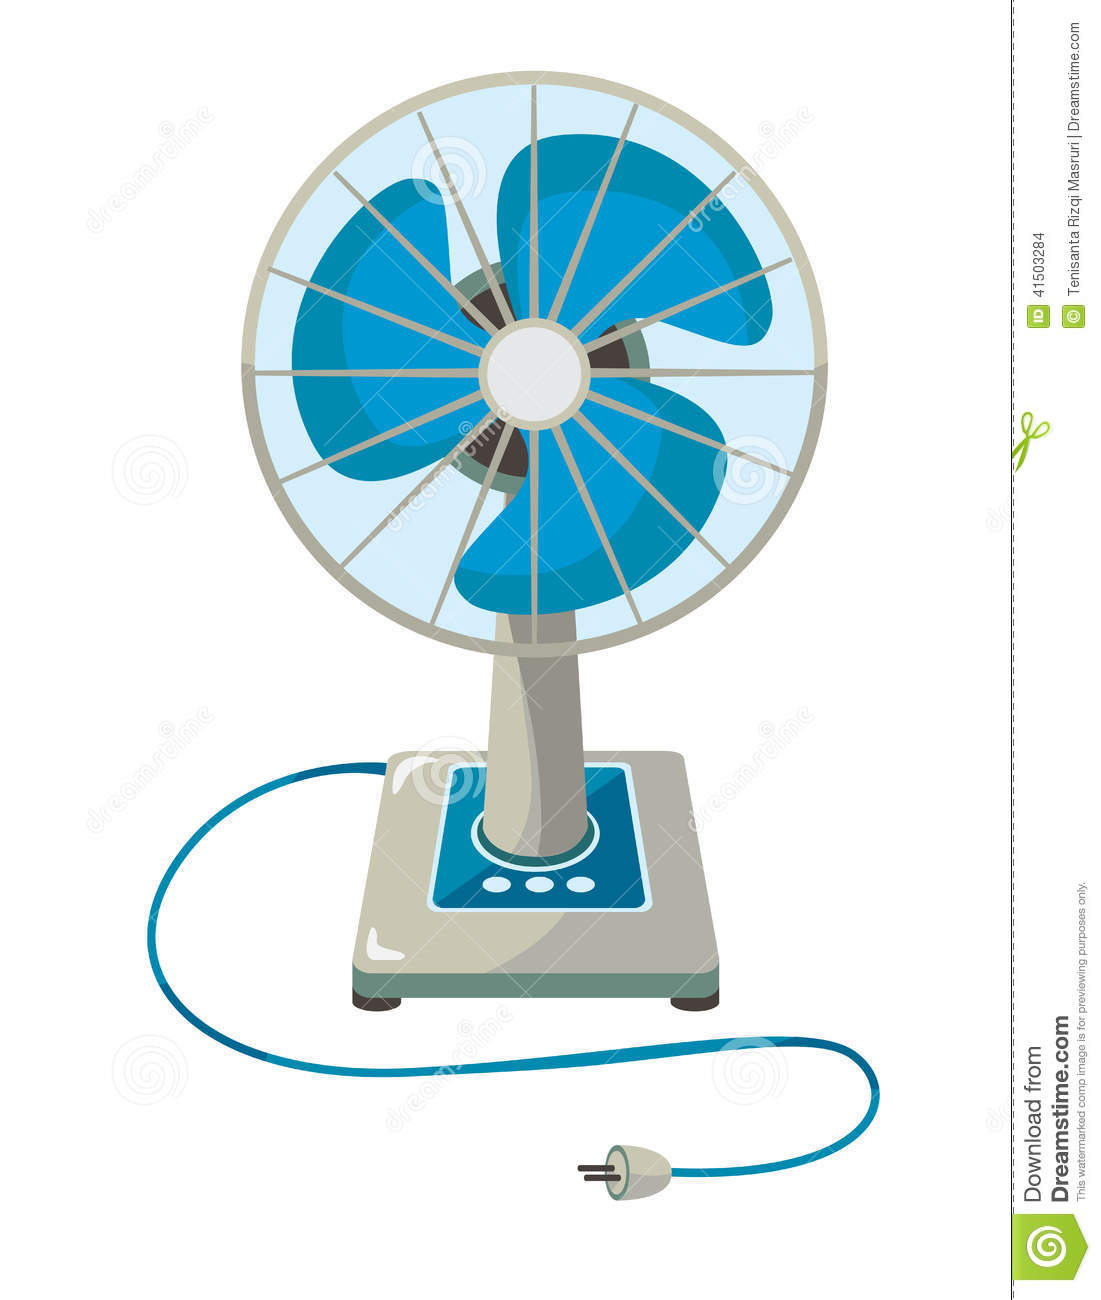 A Sketch Of A Electric Fan : Electric fan stock vector image